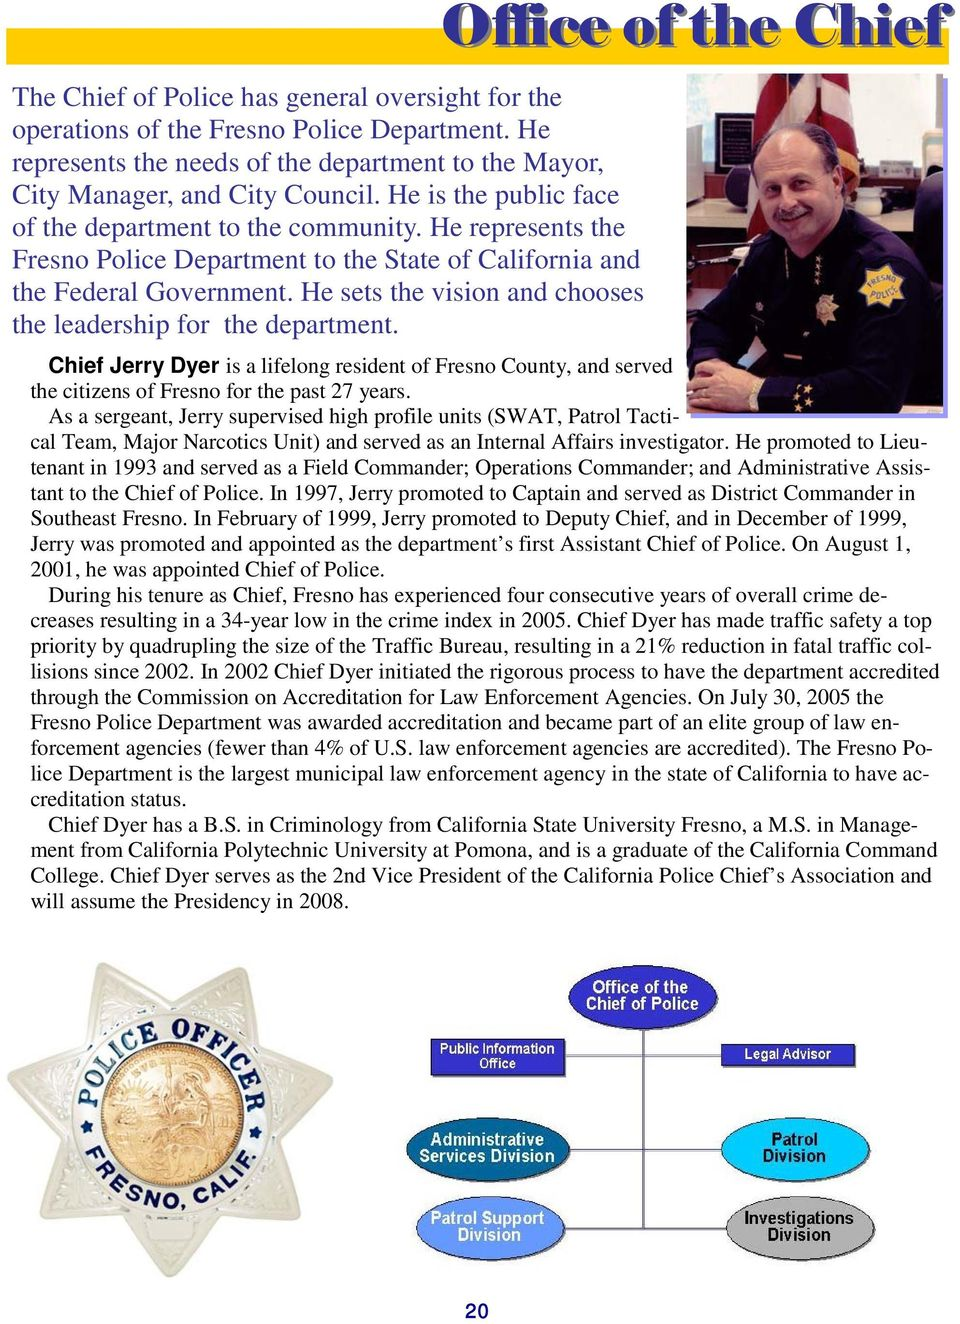 He sets the vision and chooses the leadership for the department. Office of the Chief Chief Jerry Dyer is a lifelong resident of Fresno County, and served the citizens of Fresno for the past 27 years.